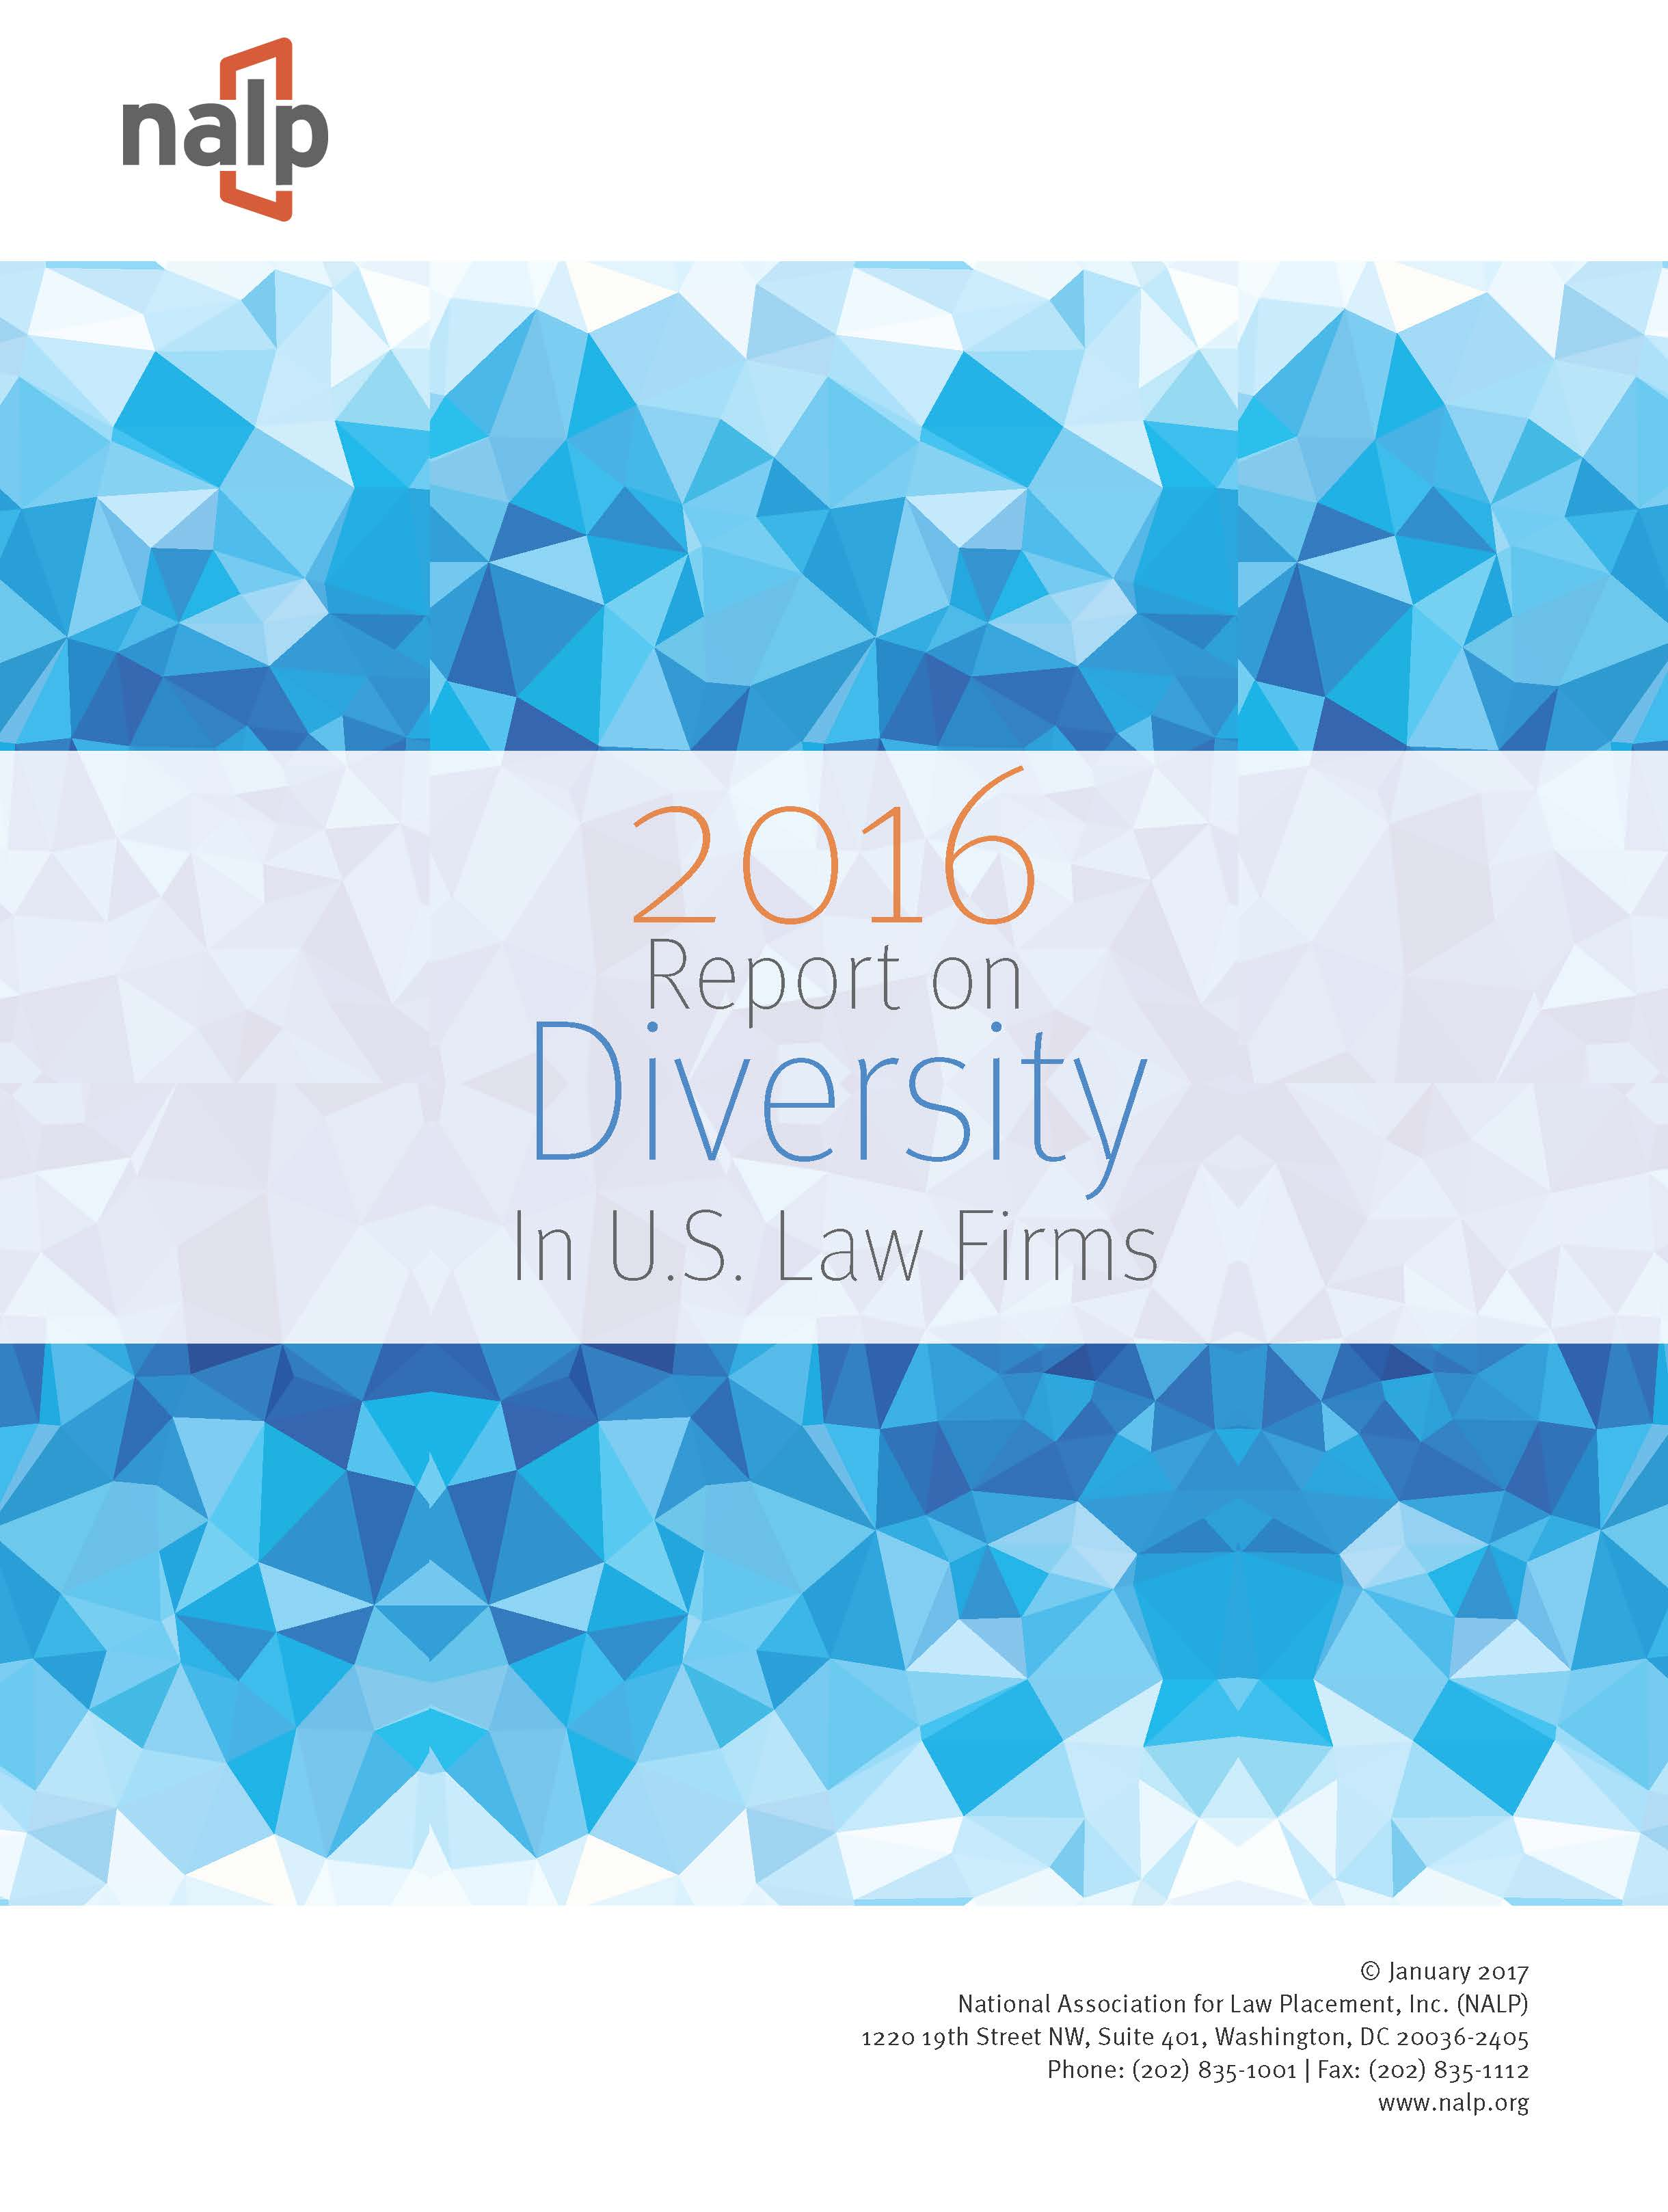 NALP 2016 Report on Diversity in U.S. Law Firms